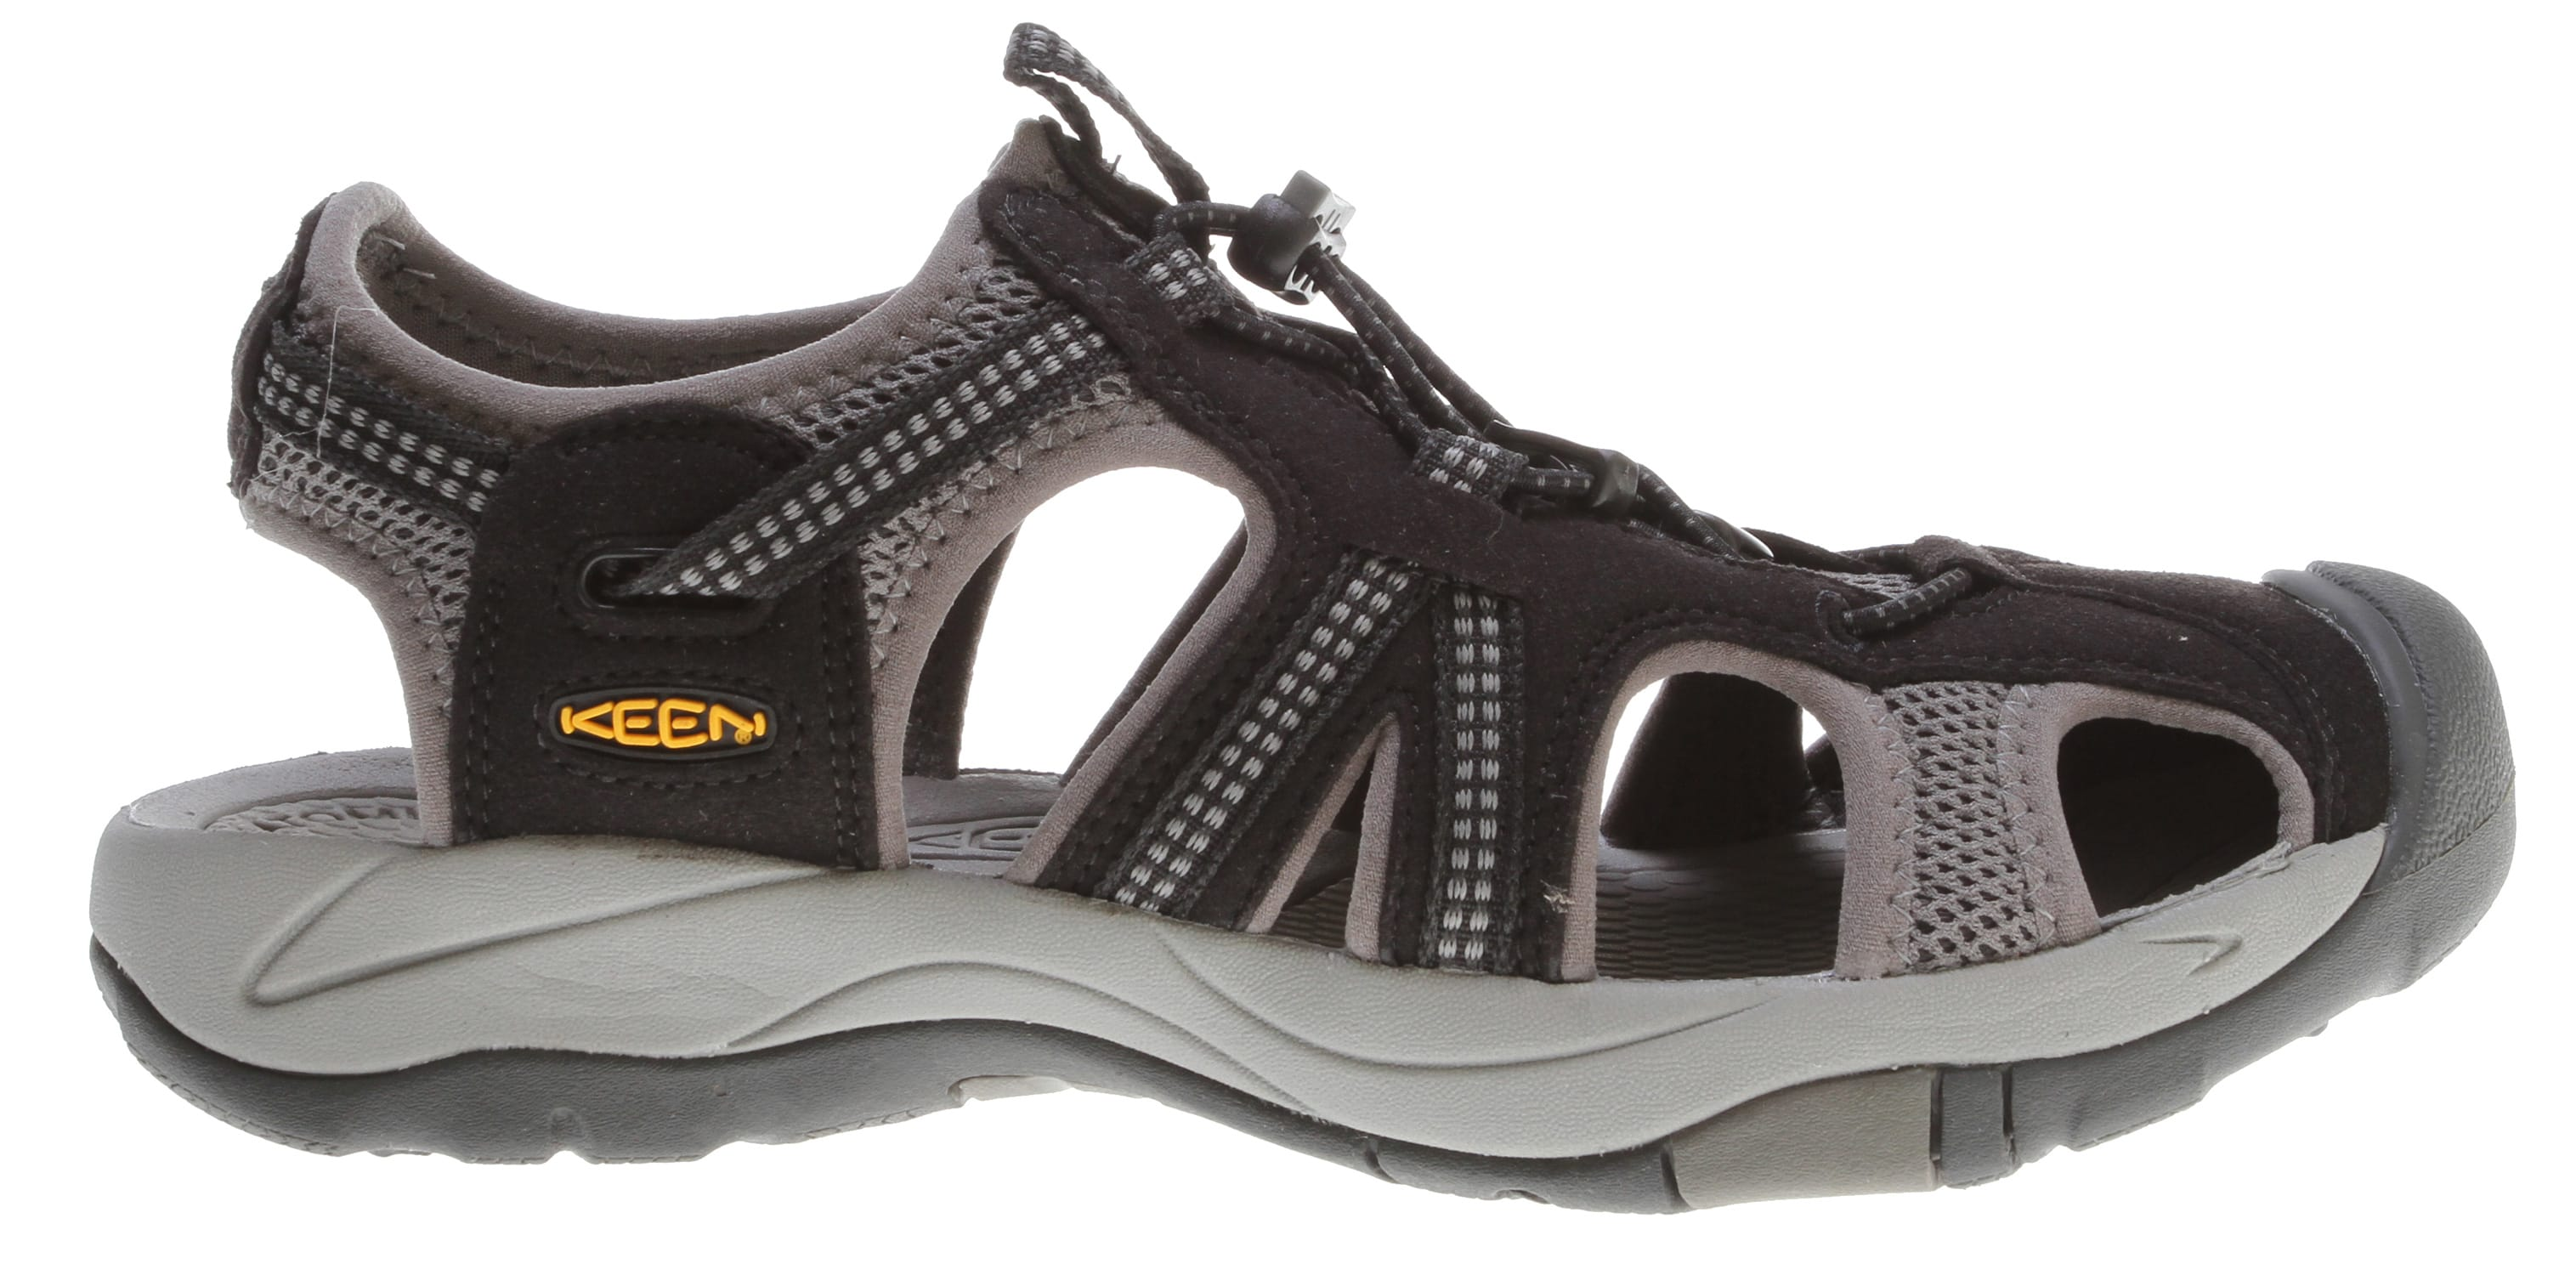 Shop for Keen Willow Sandal Water Shoes Black/Gargoyle - Women's